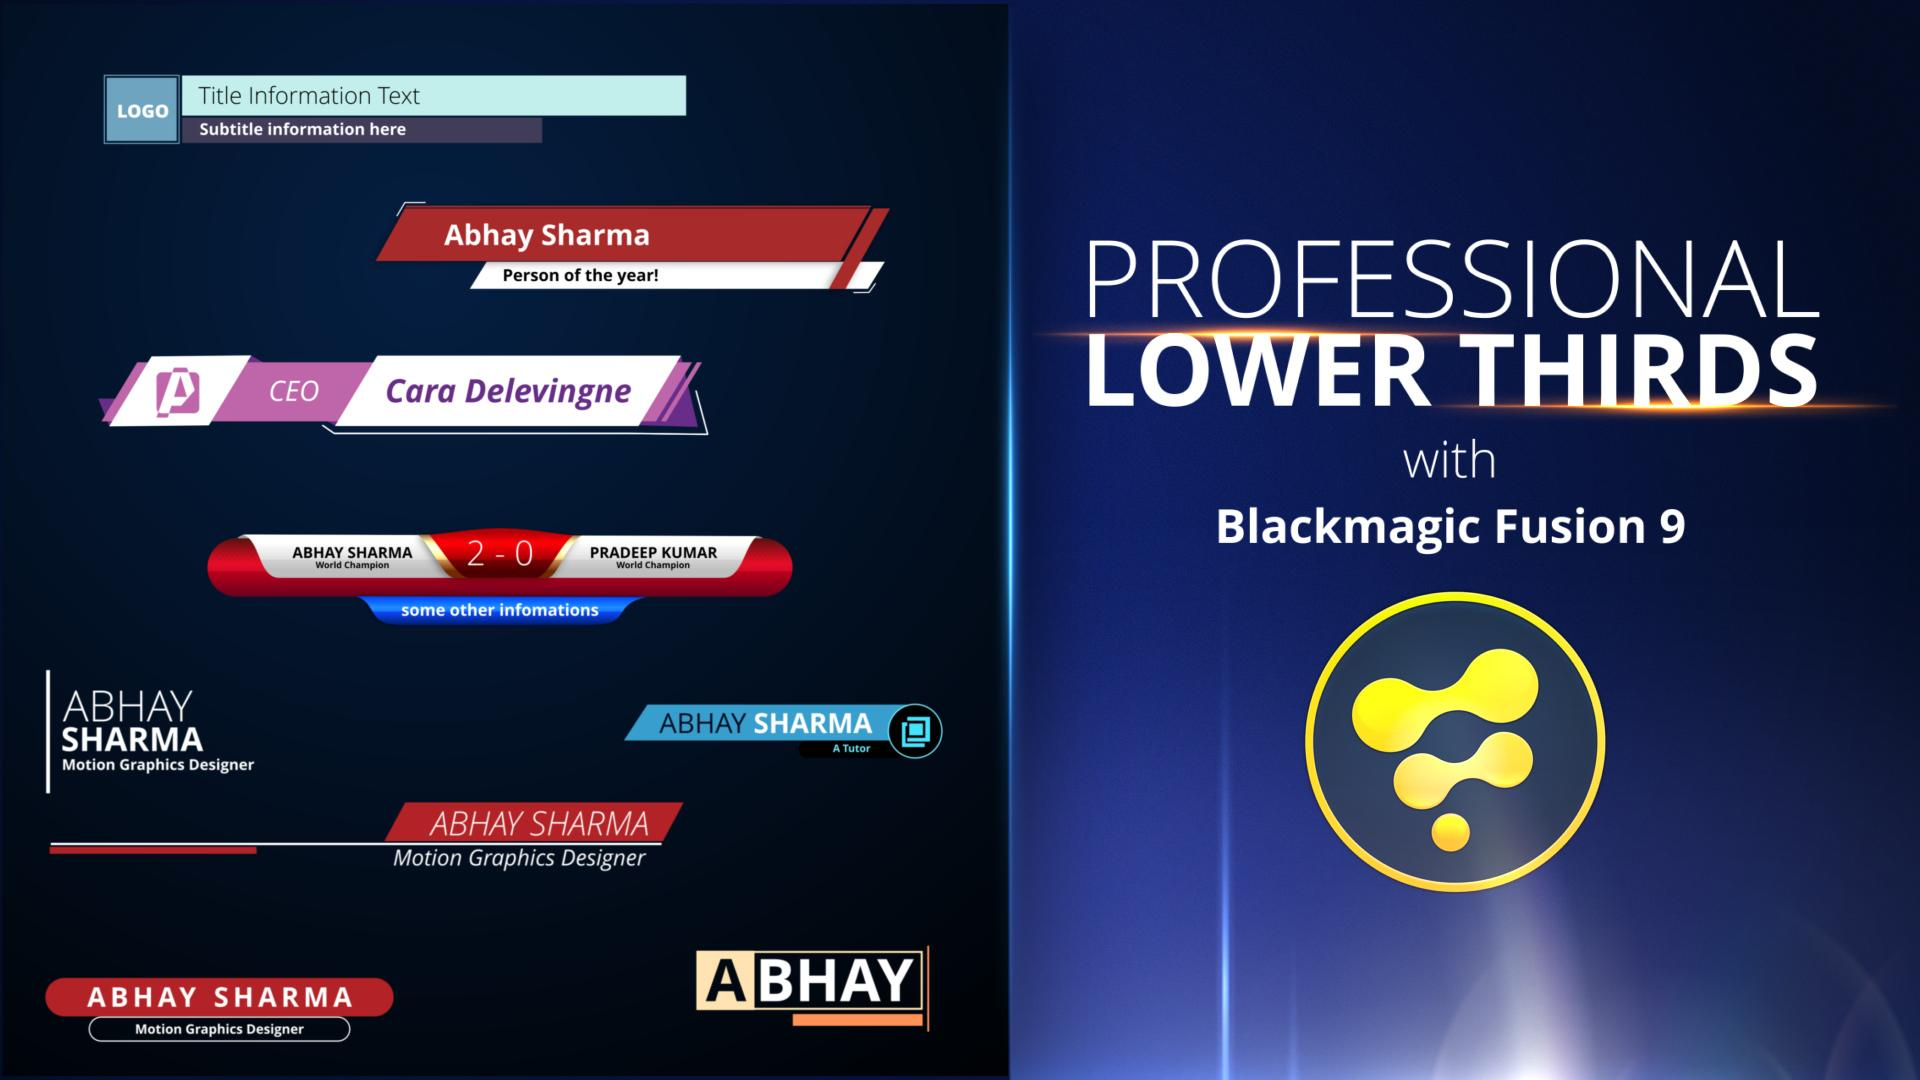 professional lower thirds with blackmagic fusion 9 abhay sharma